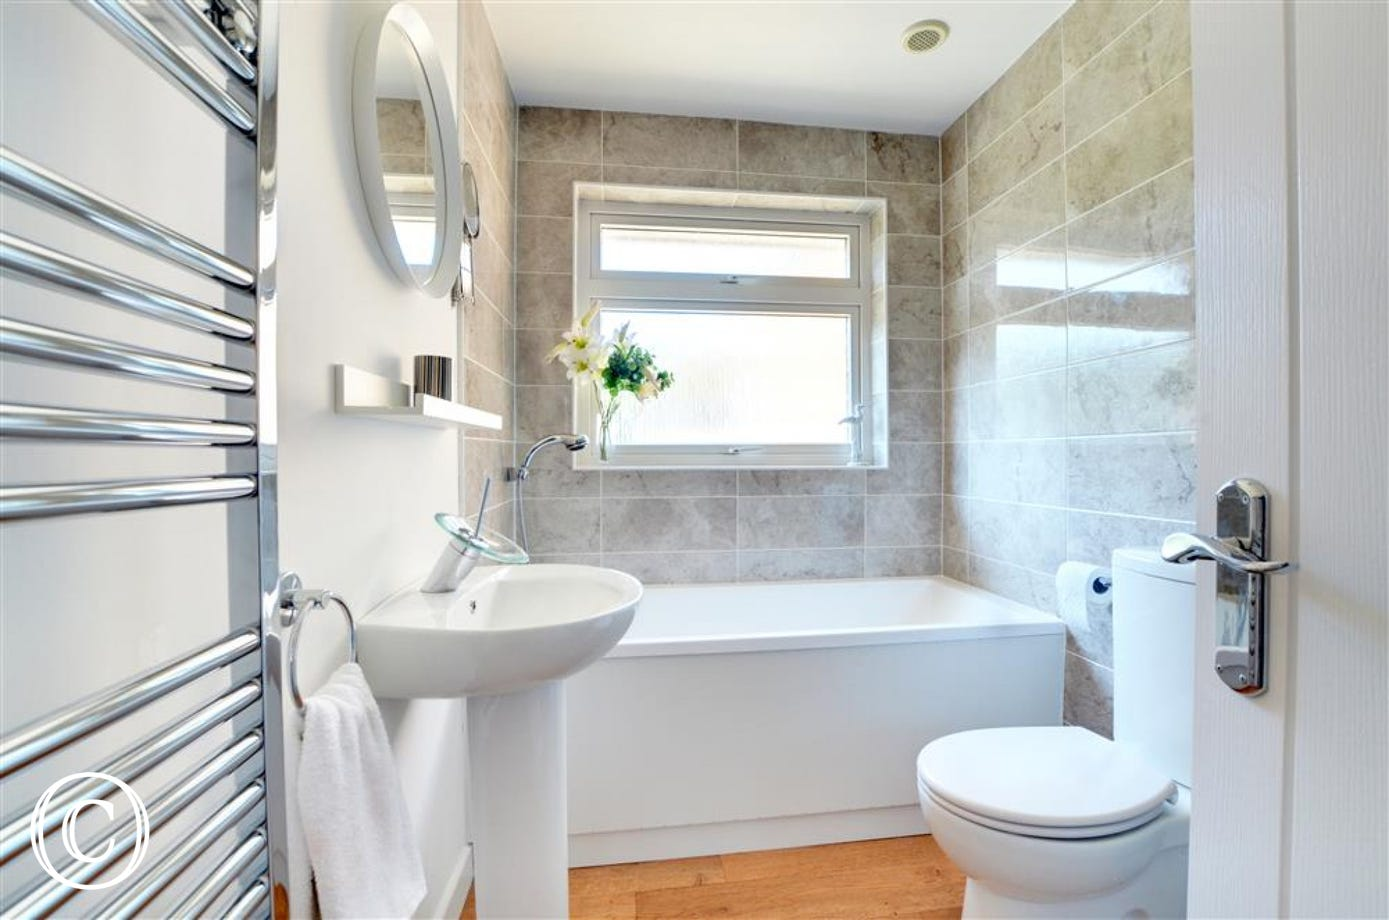 Attractive bathroom with bath and separate shower cubicle